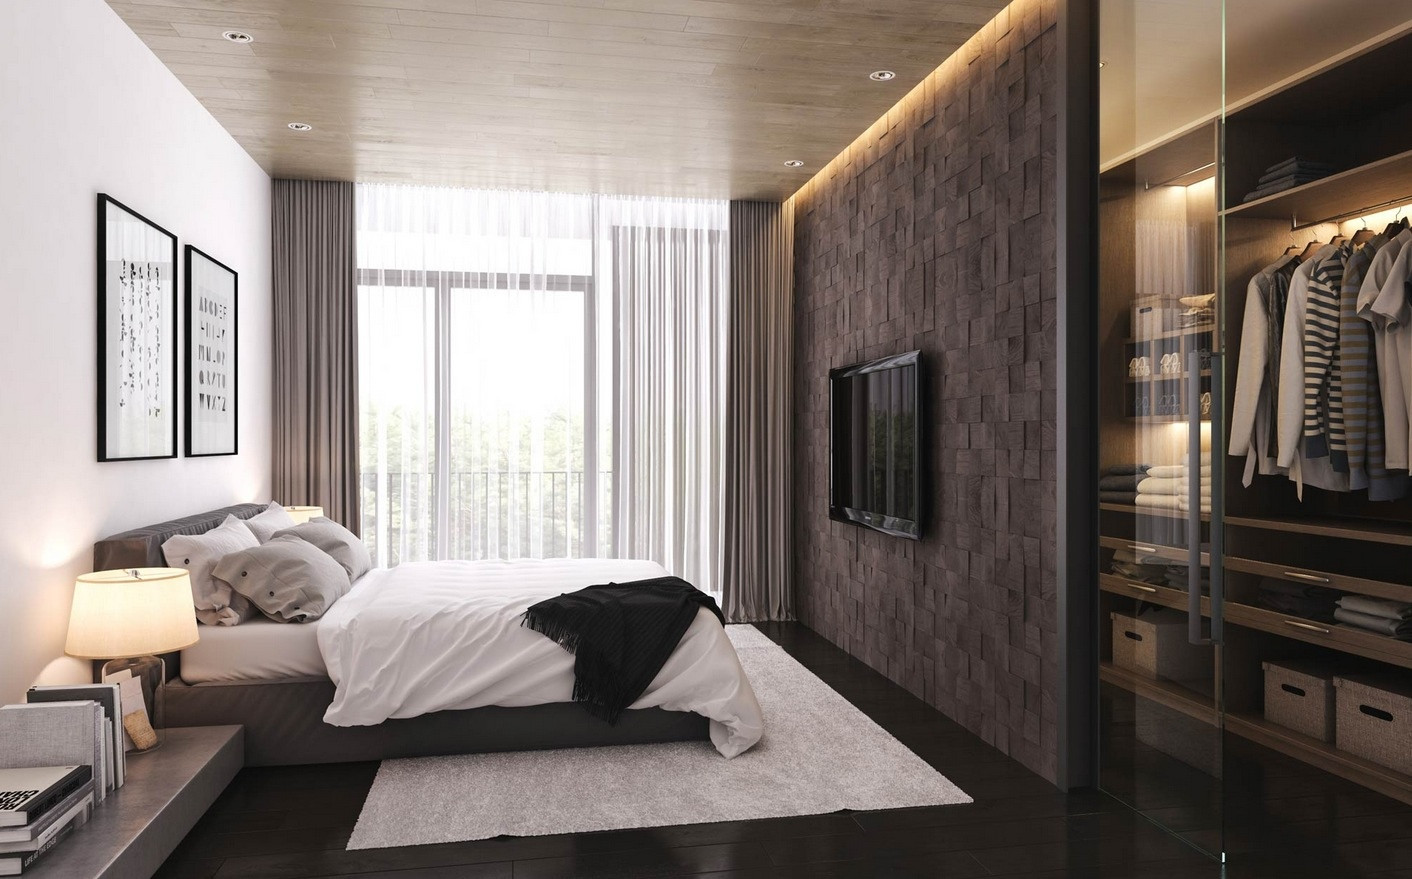 Best ideas about Cool Bedroom Ideas . Save or Pin 21 Cool Bedrooms for Clean and Simple Design Inspiration Now.